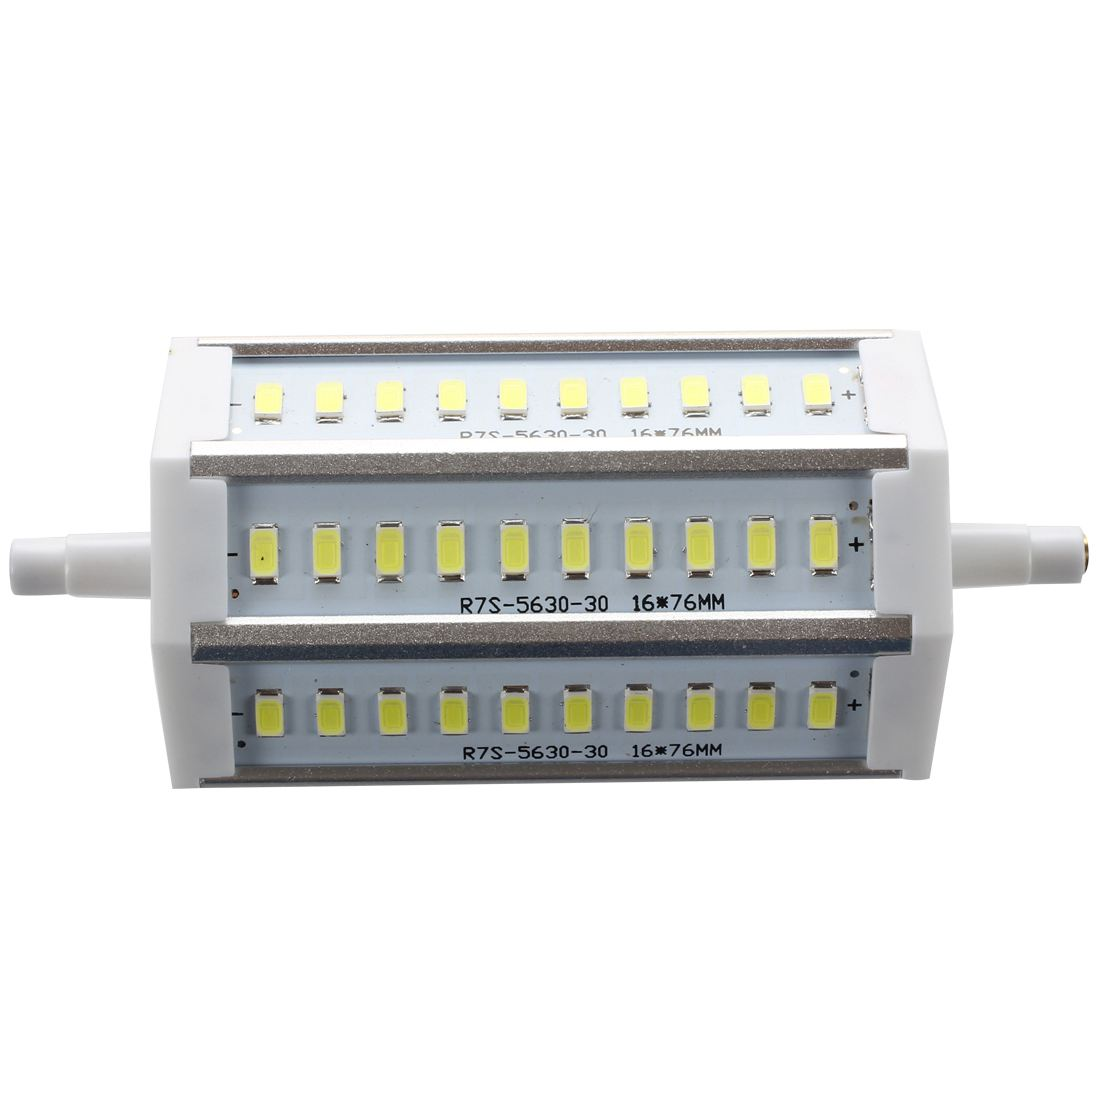 R7s Led Dimmbar R7s 12w Dimmbar 118mm 30 Smd Led Birne Weiss Halogen Scheinwerfer